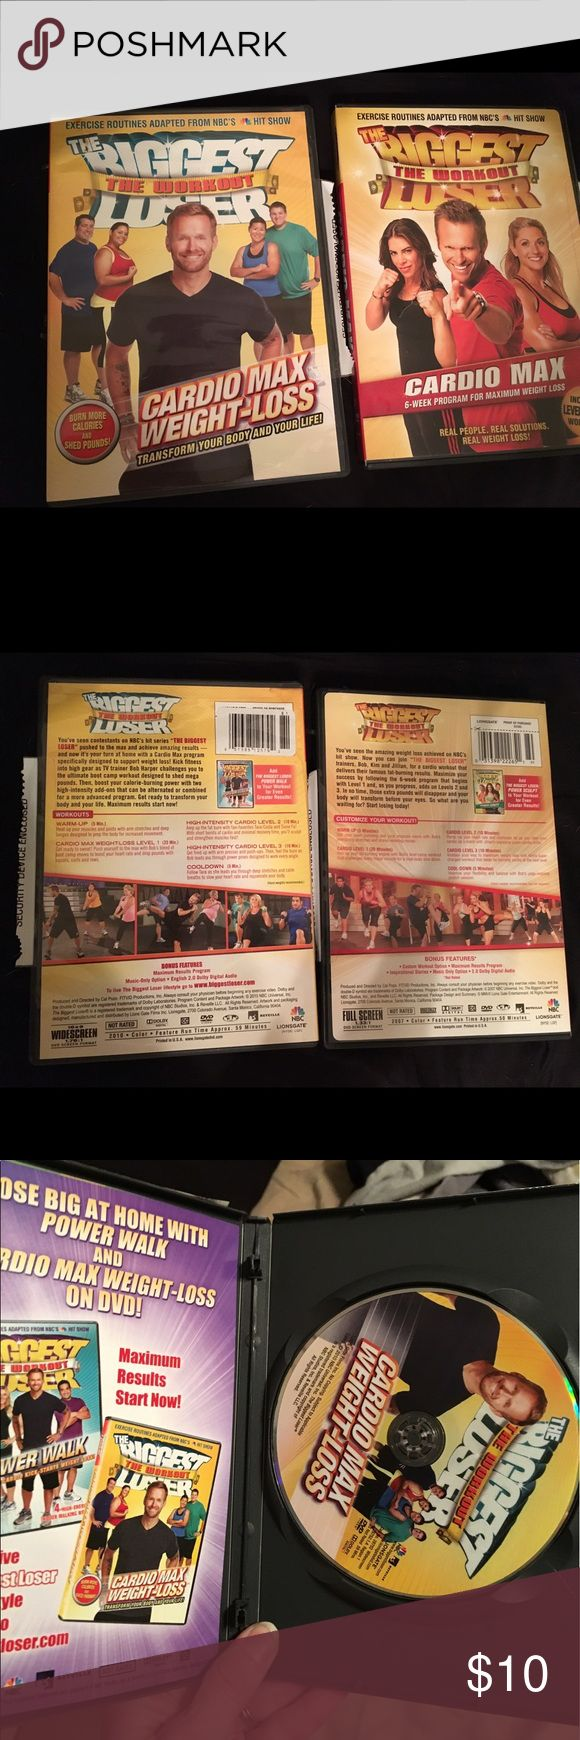 Biggest Loser workout 2 DVD set Biggest Loser workout 2 DVD set. Each DVD comes with 3 cardio level workouts designed for fat shredding.  6 workouts all together each disc you can do level one or add on levels 2 or 3 so you'll never get bored. Great addition to your at home workout DVDs. Other